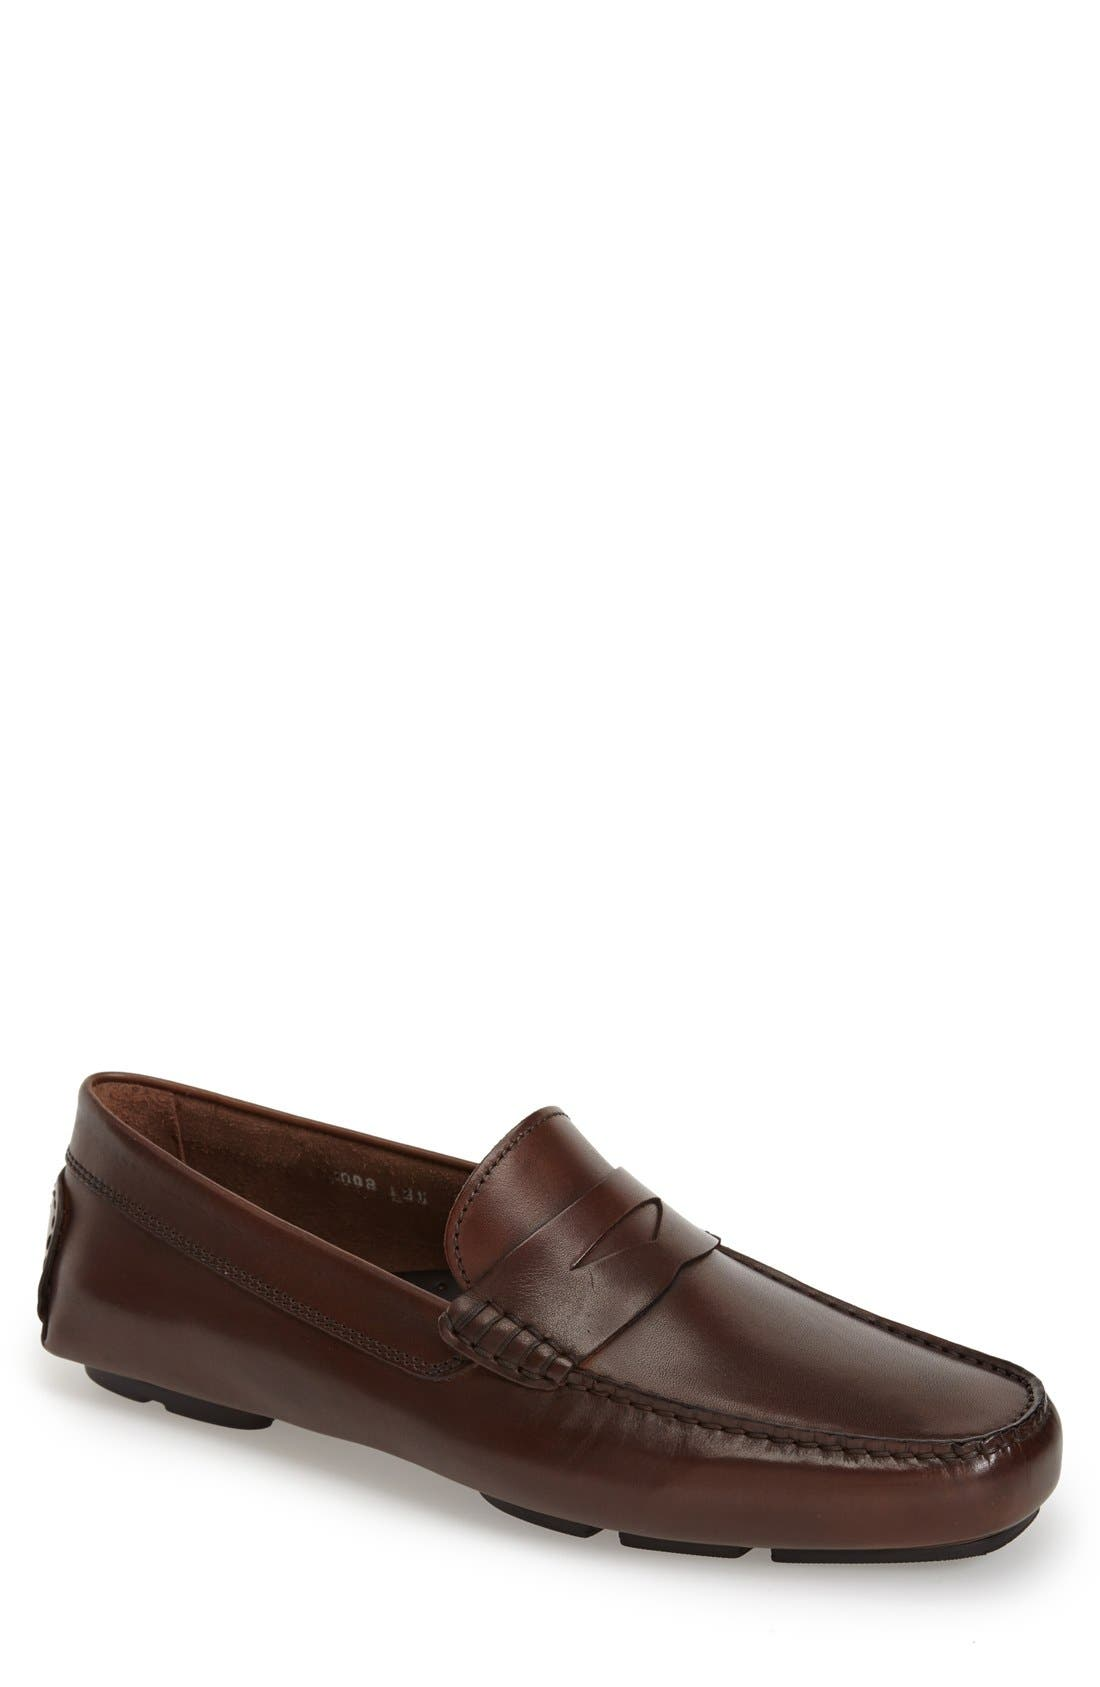 'Harper' Driving Shoe,                         Main,                         color, PRAGMA T MORO LEATHER